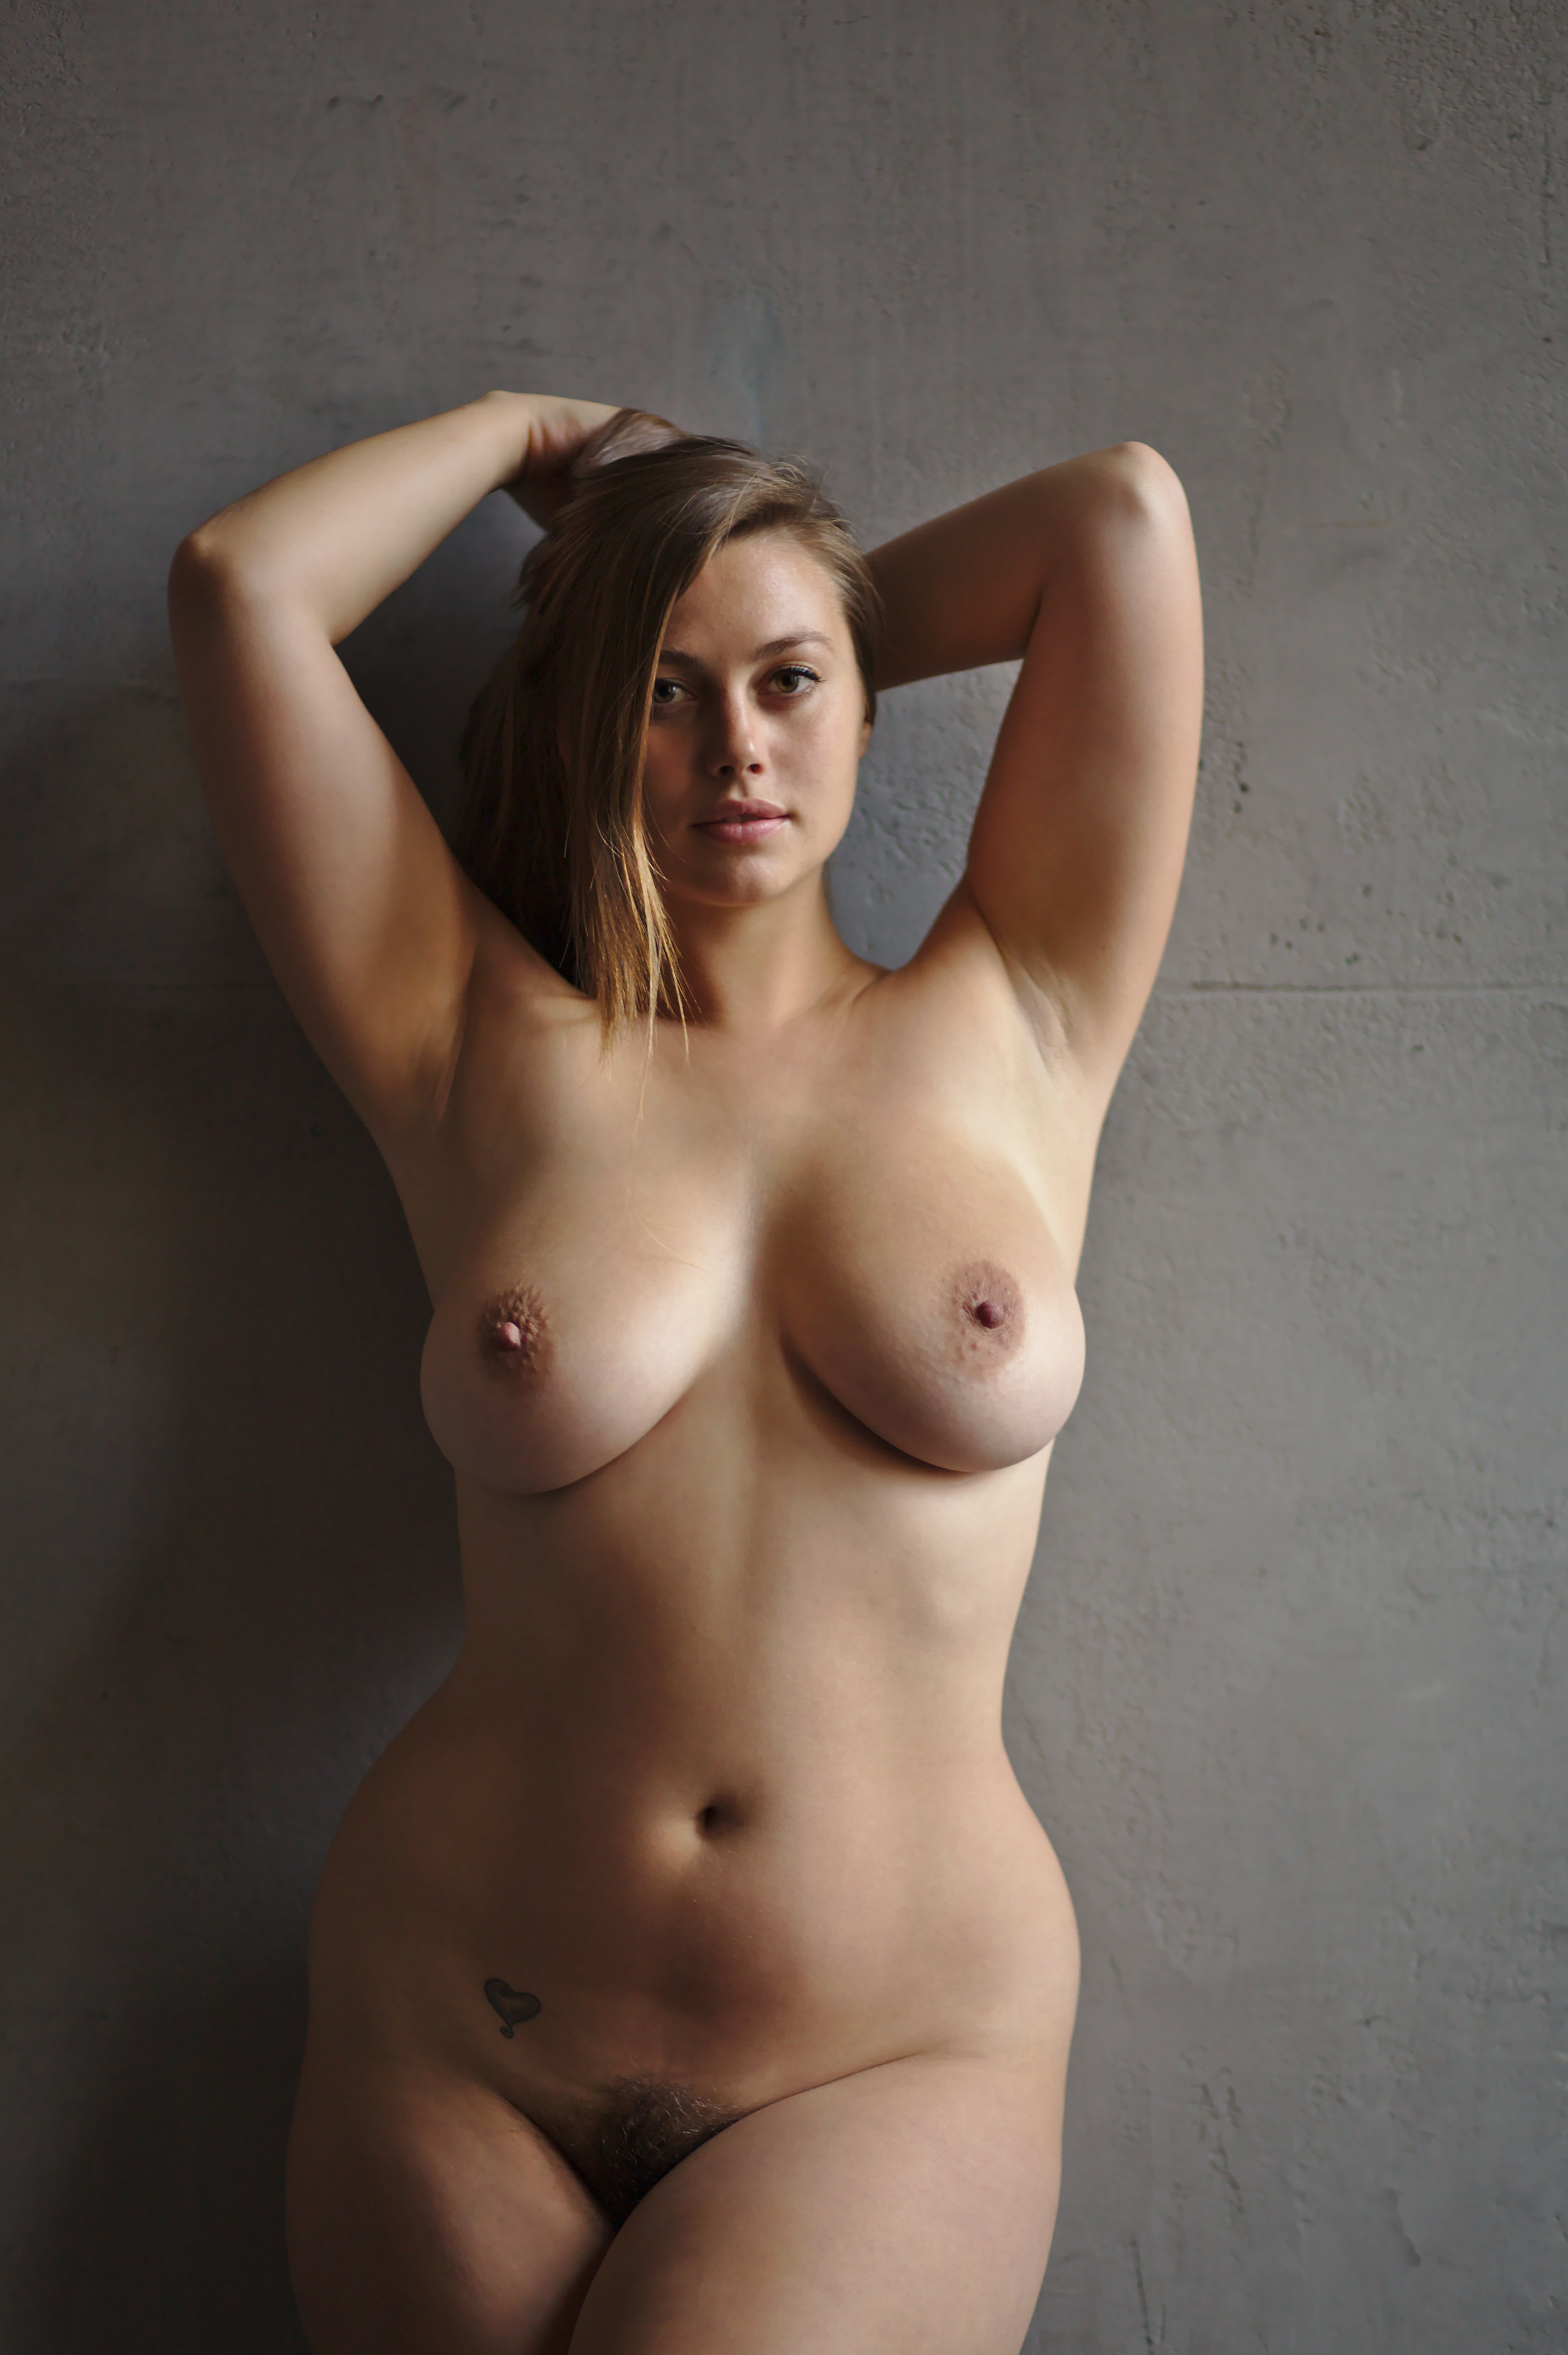 Curvy amateur girl danielle poses topless with her big tit girlfriend hailey